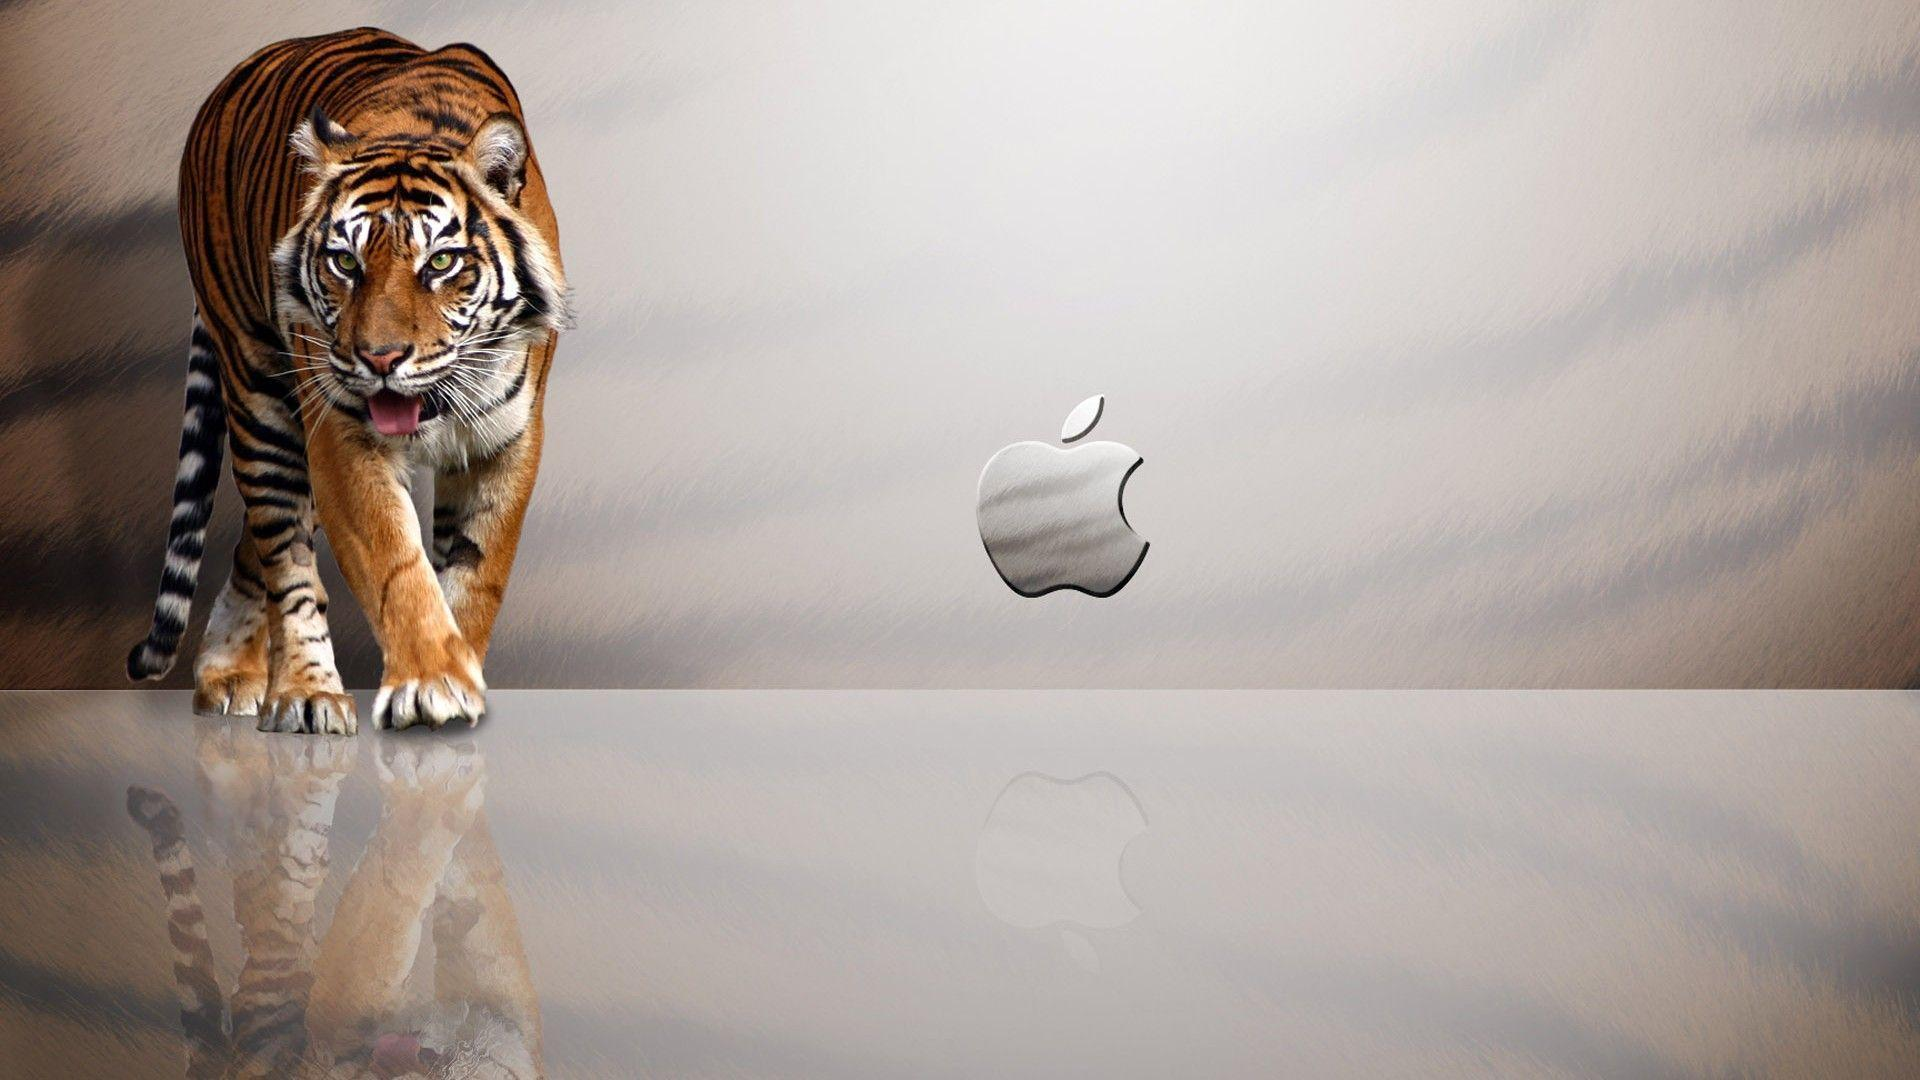 Apple Mac OS X Tiger Computer Wallpapers